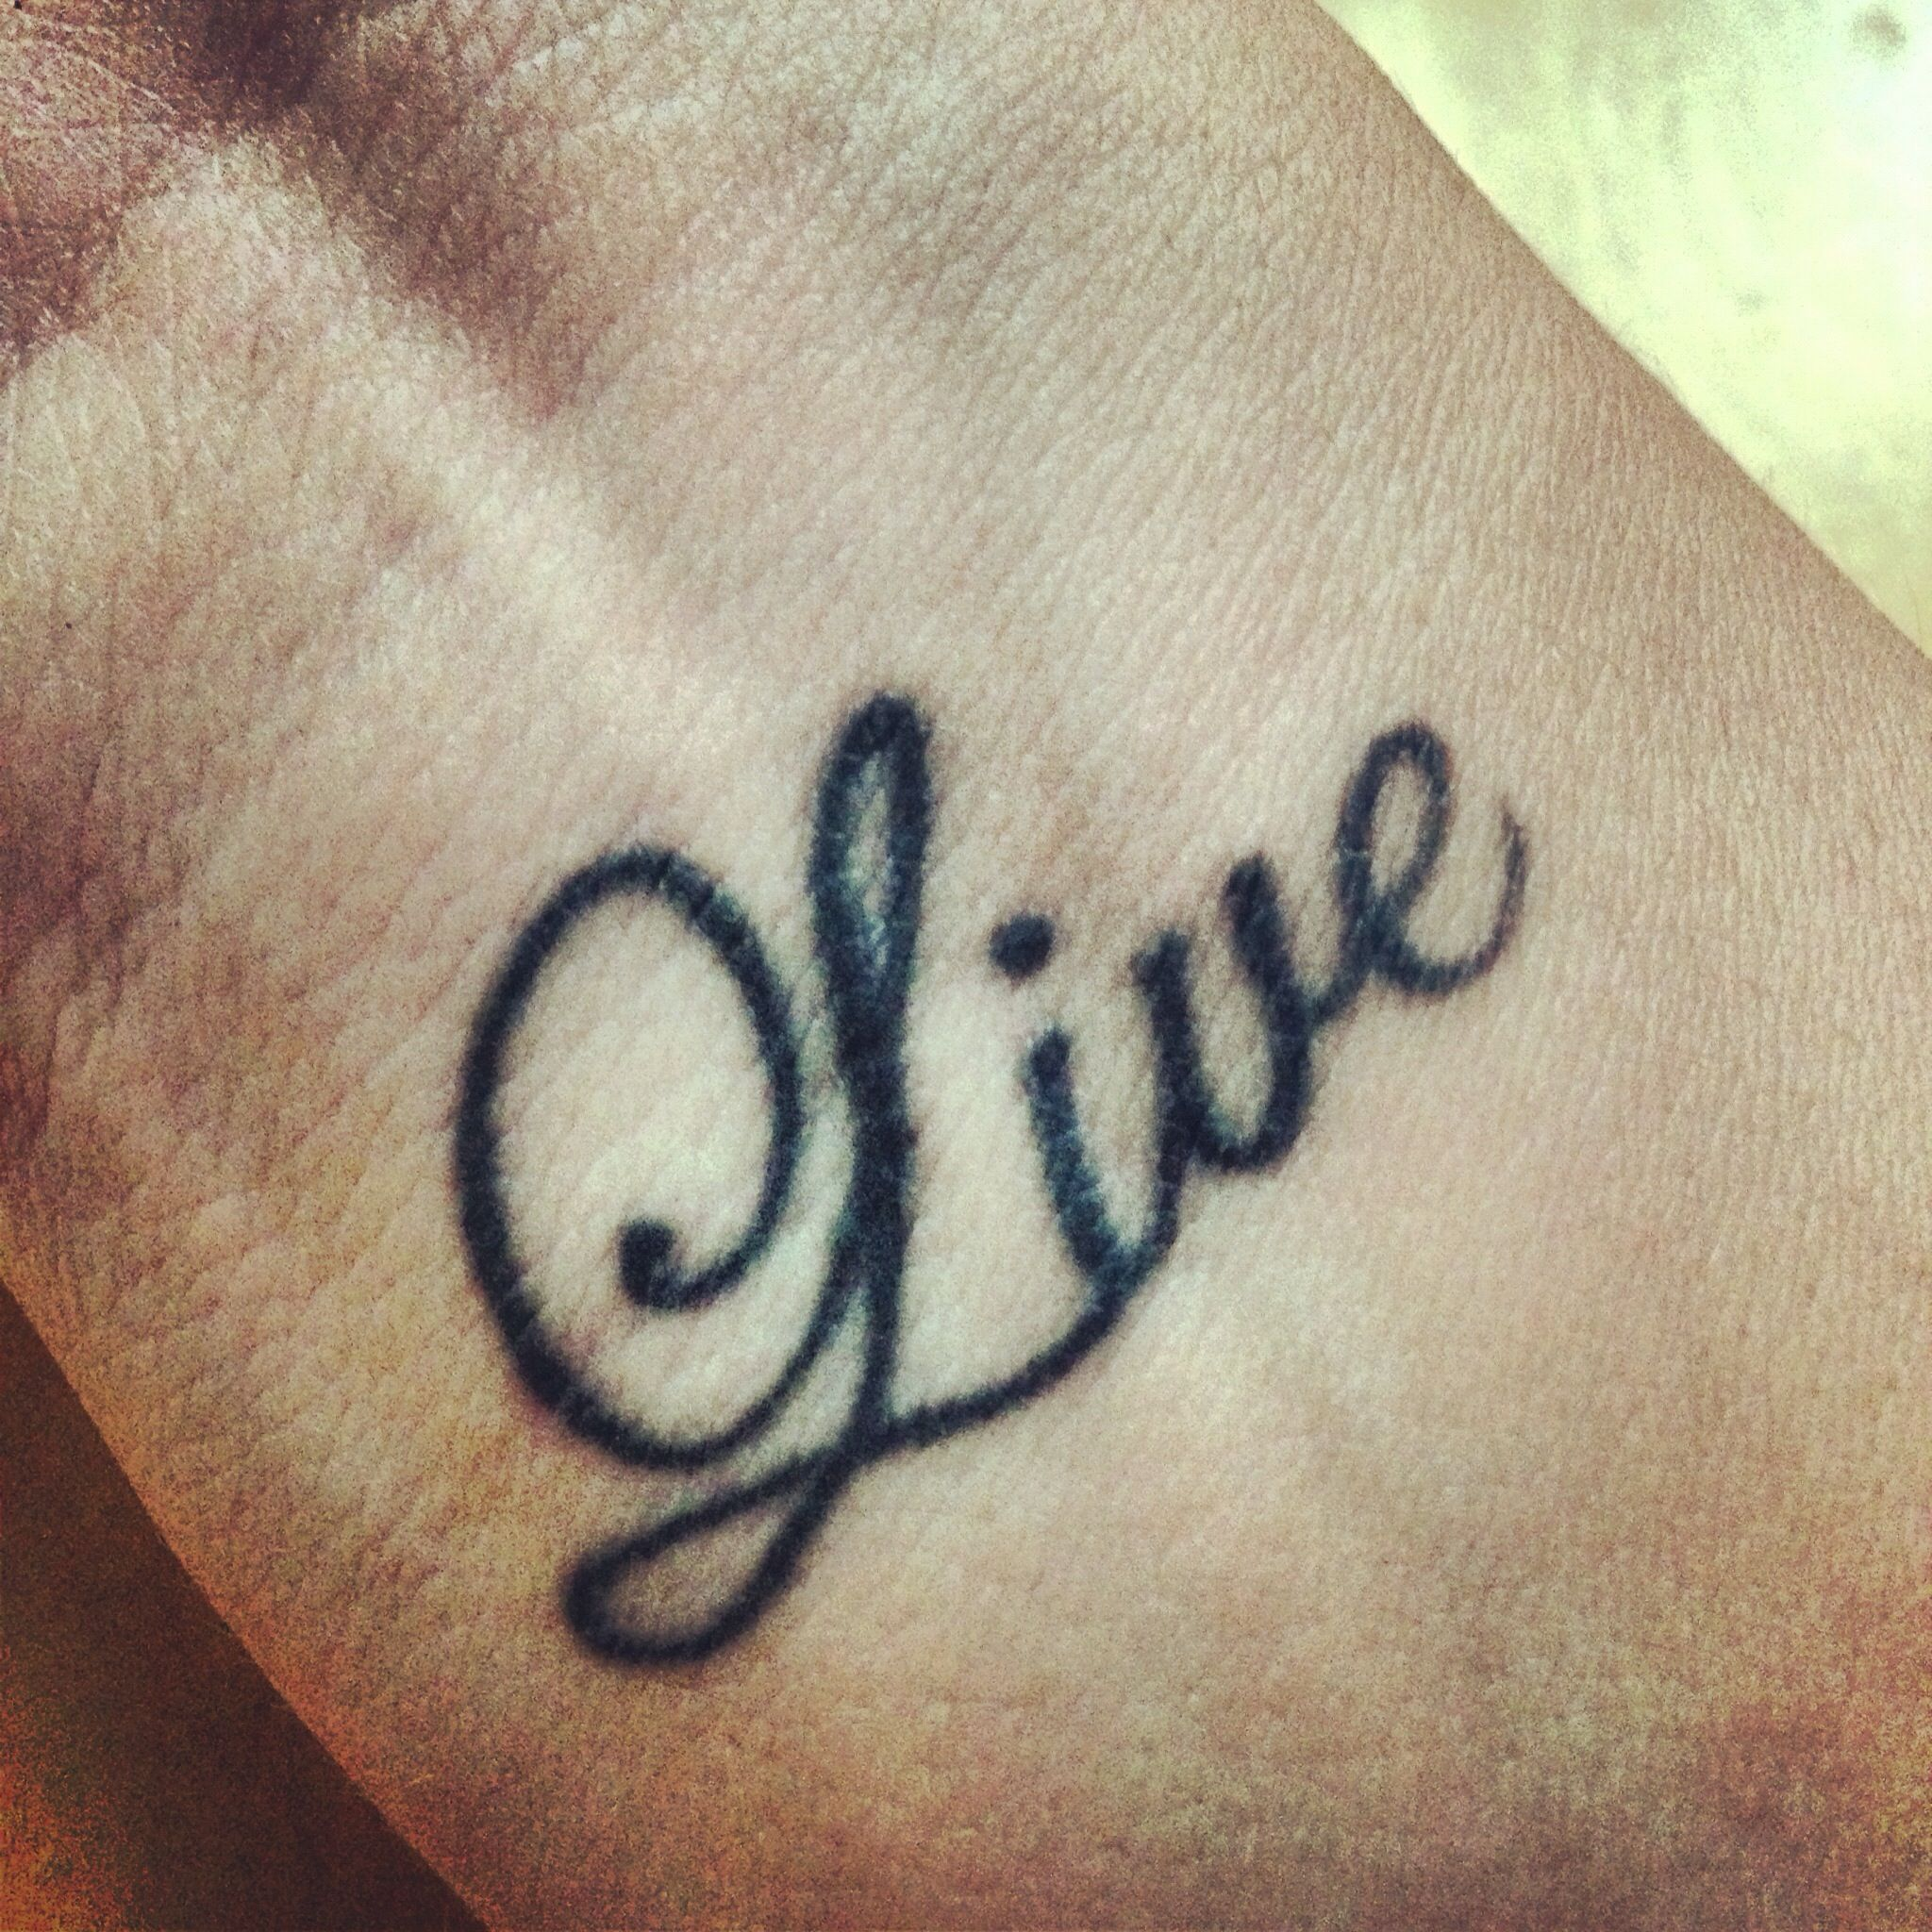 Text Tattoo Live To Remind Me What What I Need To Do Each Day Life Can Be Short And Tomorrow Is Not Promised To An Text Tattoo Wrist Tattoos Tattoos